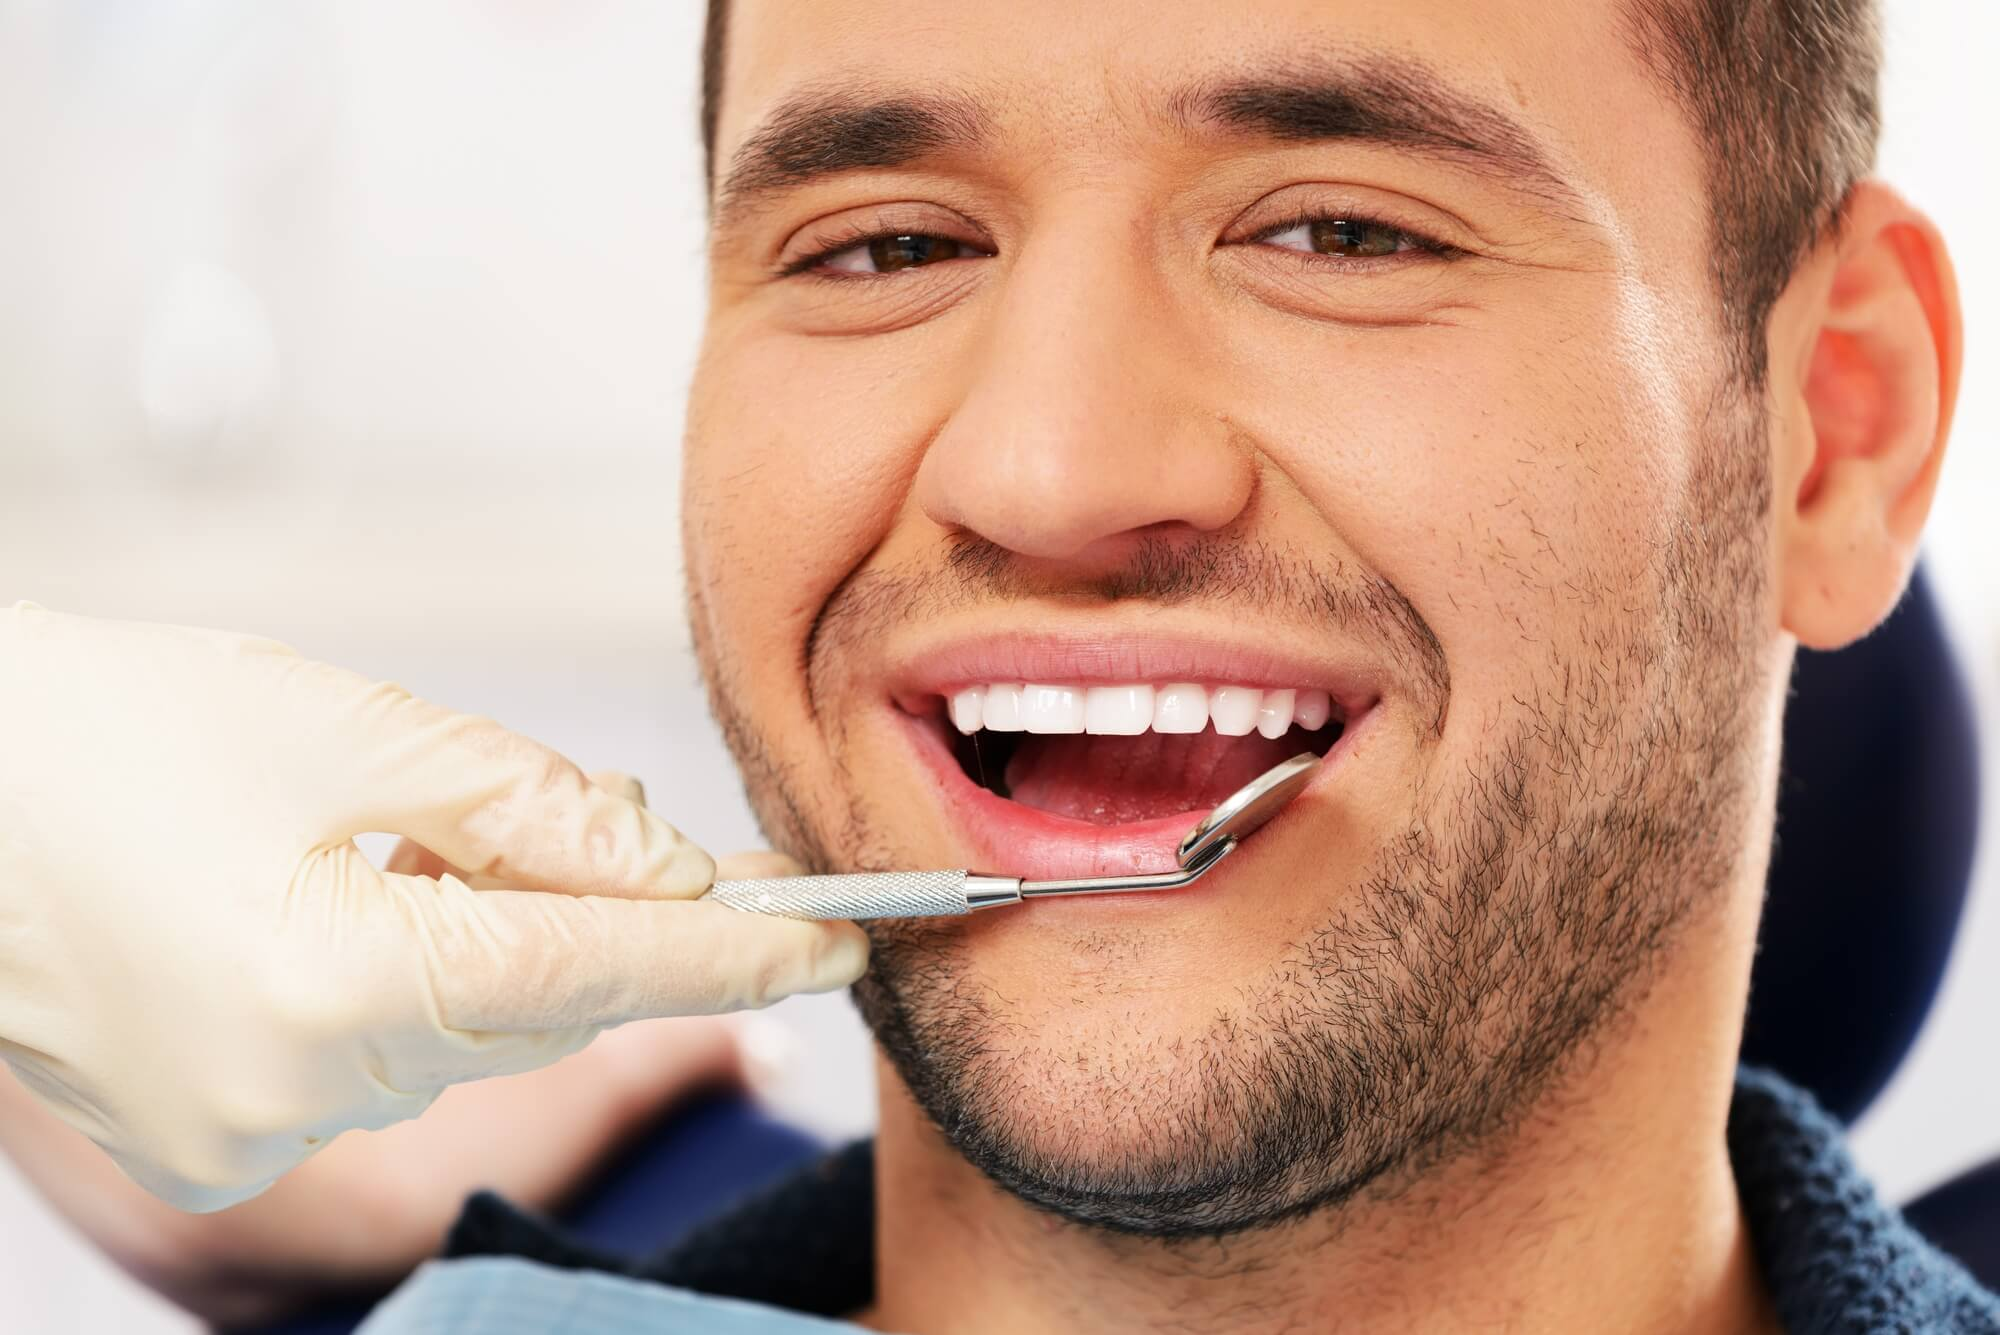 where can I find an oral surgeon in pembroke pines fl